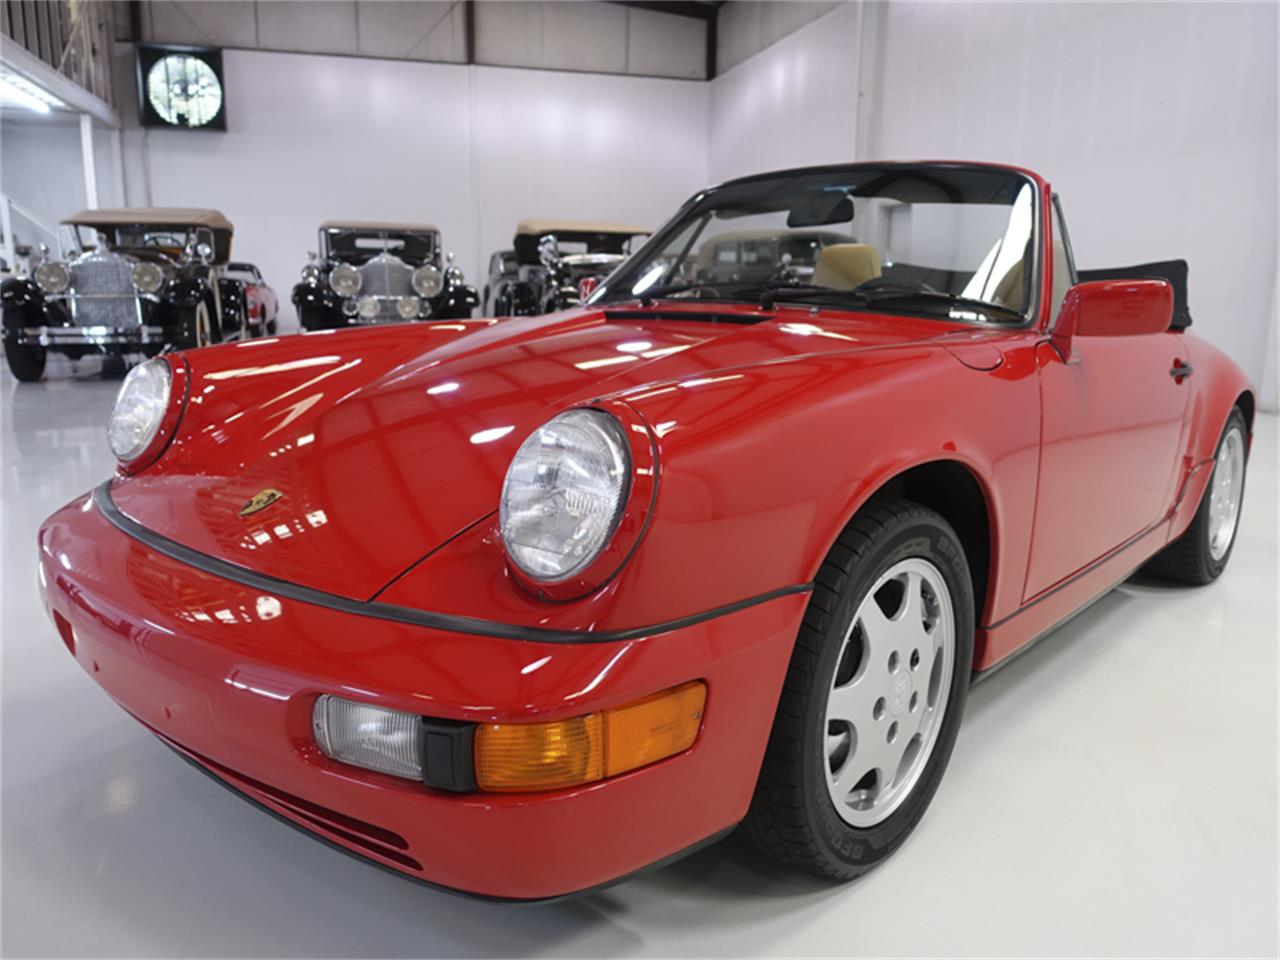 Large Picture of 1990 Porsche 964 Carrera 2 located in Missouri - $59,900.00 Offered by Daniel Schmitt & Co. - PVNV